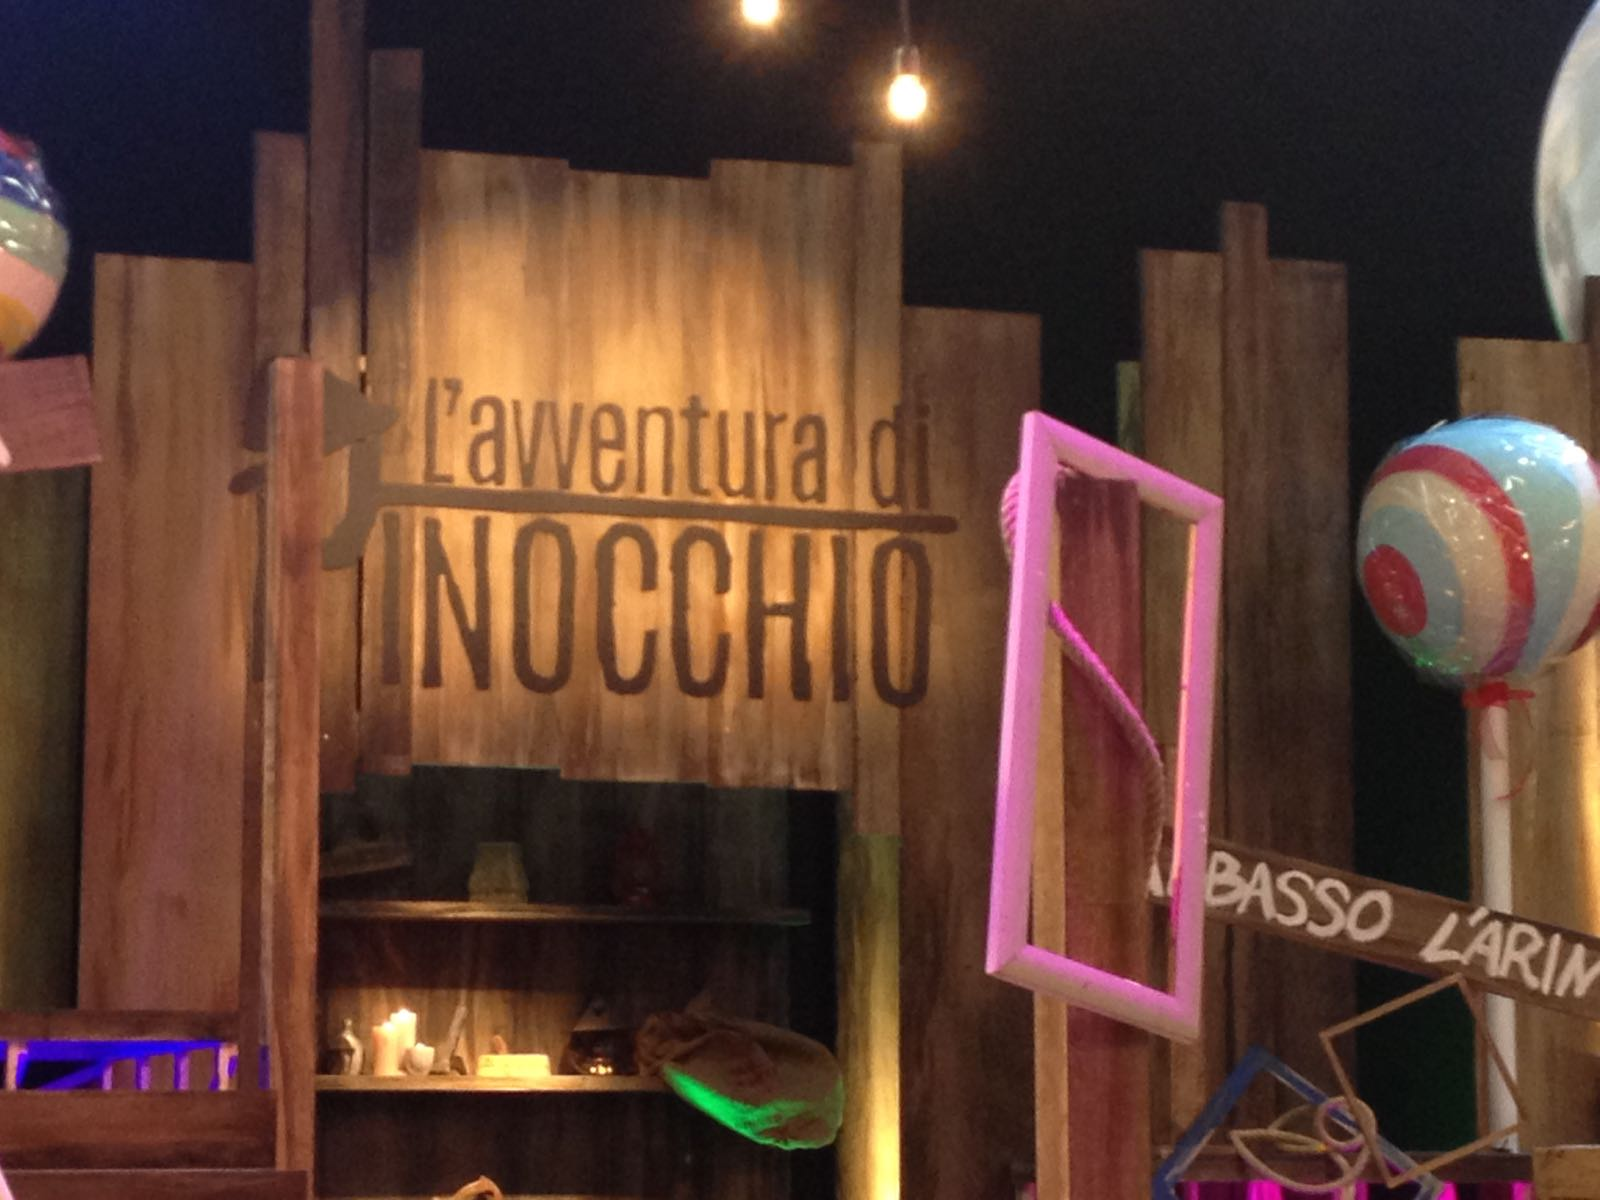 PINOCCHIO SUL SET TV